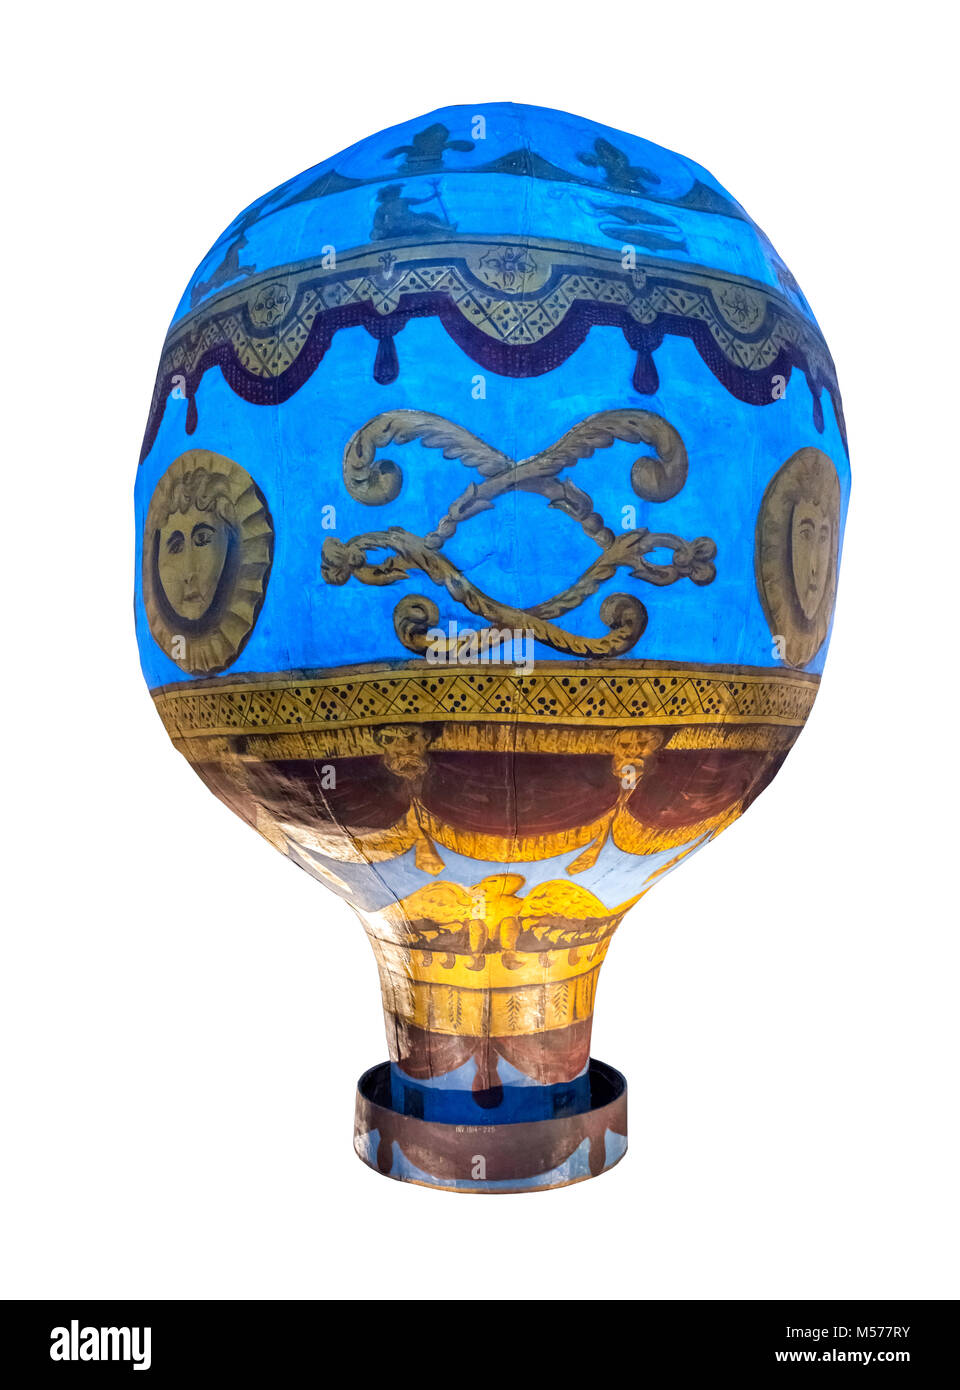 Montgolfier Balloon. A model of the balloon used for the first manned flight in November 1783, Science Museum, London - Stock Image